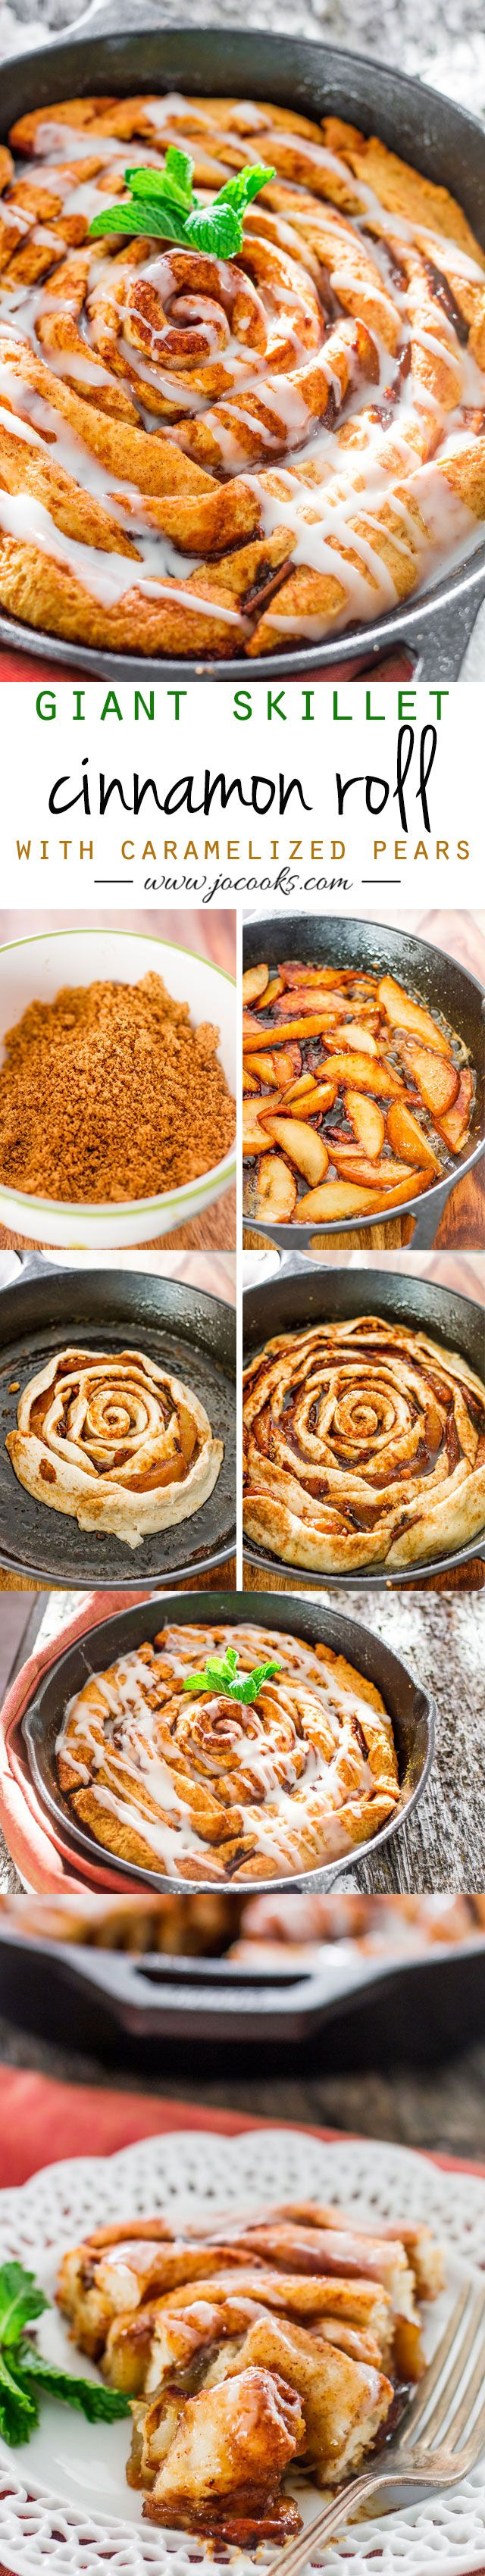 Giant Skillet Cinnamon Rolls with Caramelized Pears – It's gooey, it's caramelly, it's got fruit, so sit back, relax, and enjoy.